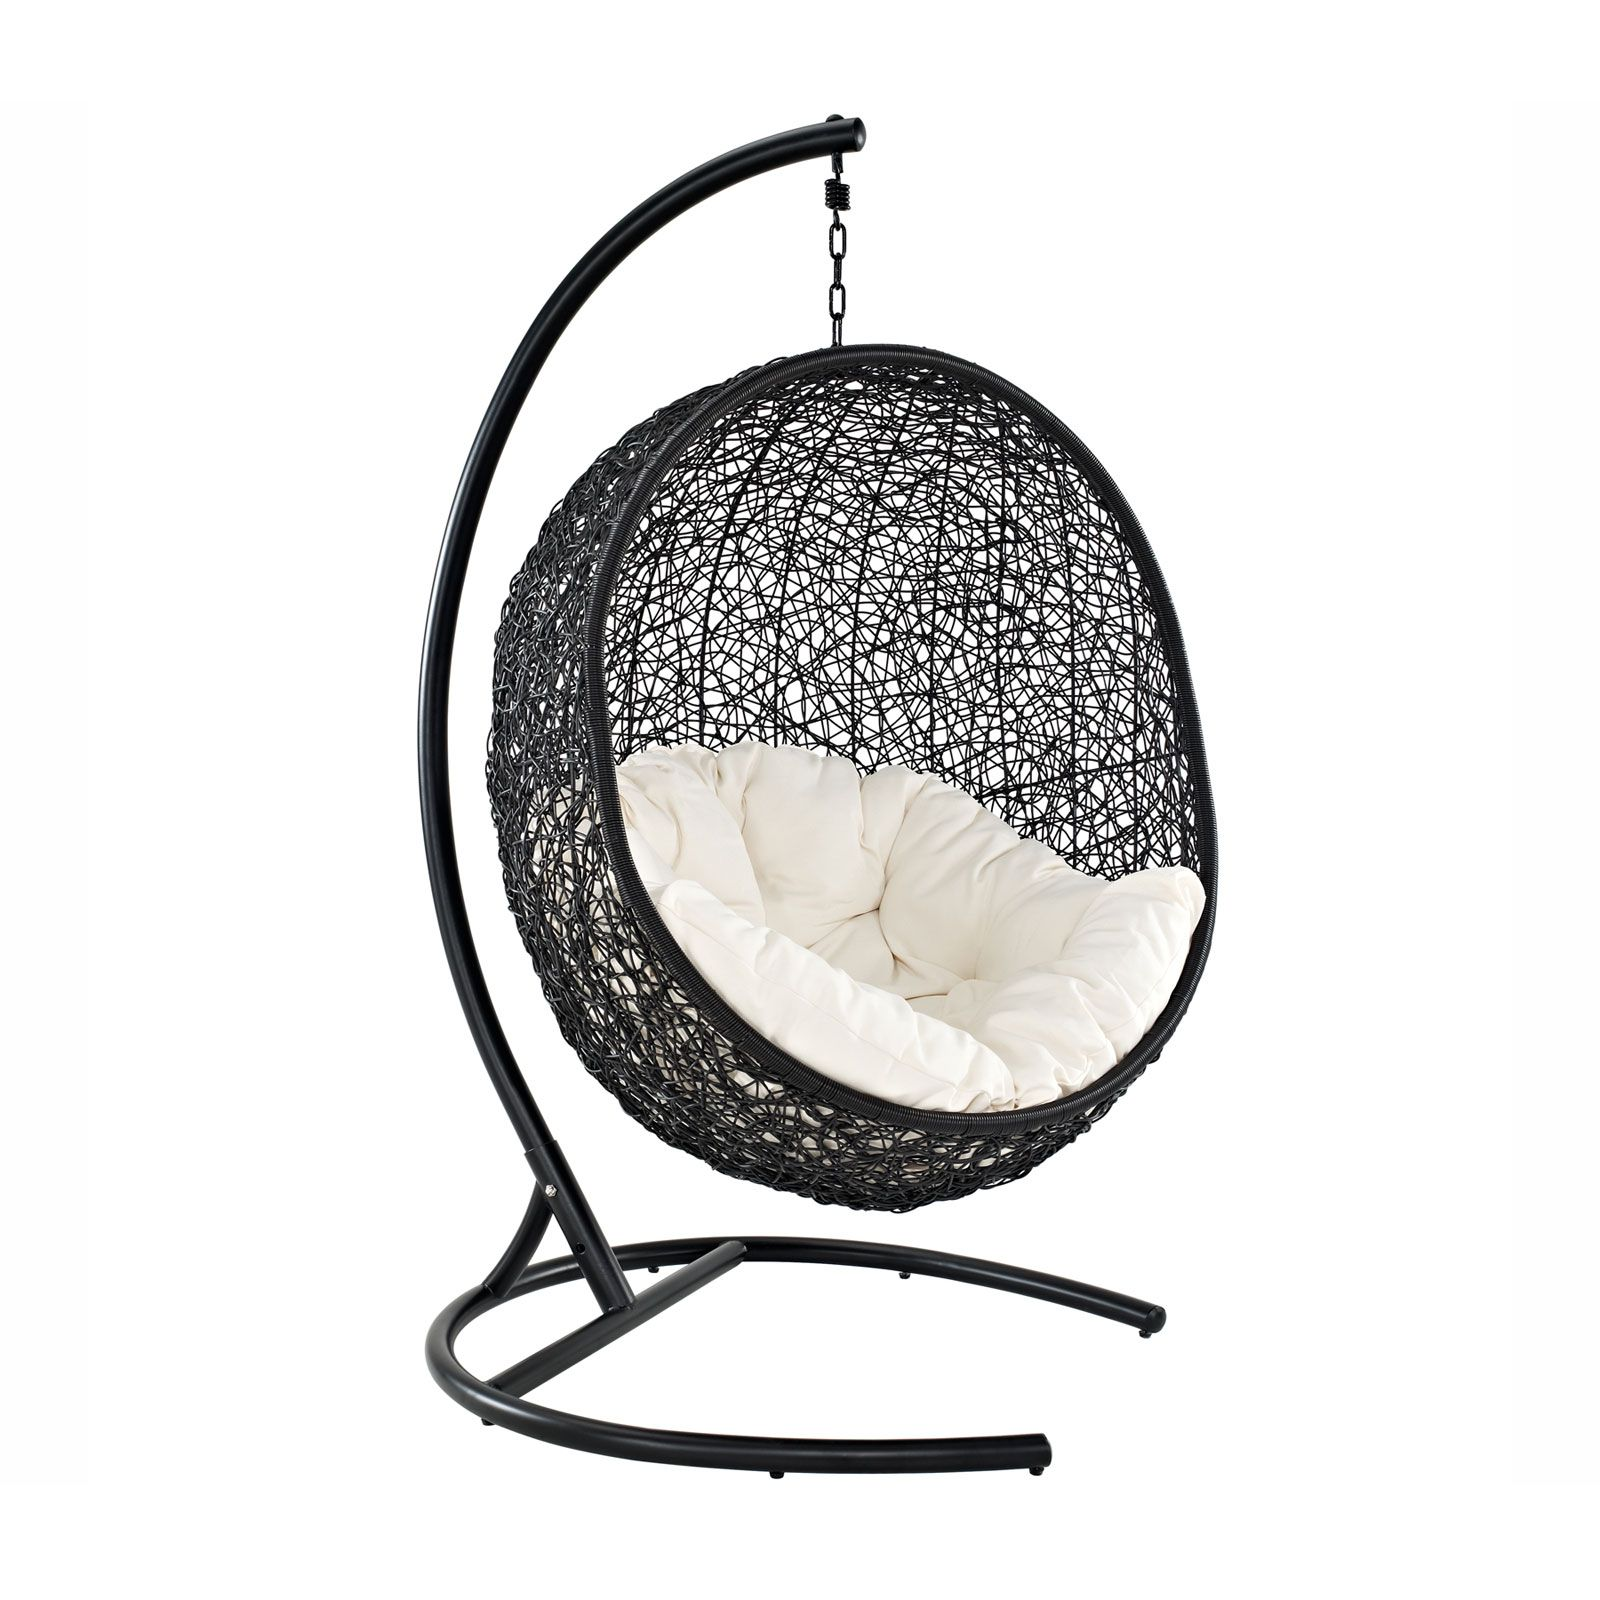 Espresso metal and woven rattan bine to create the Hanging